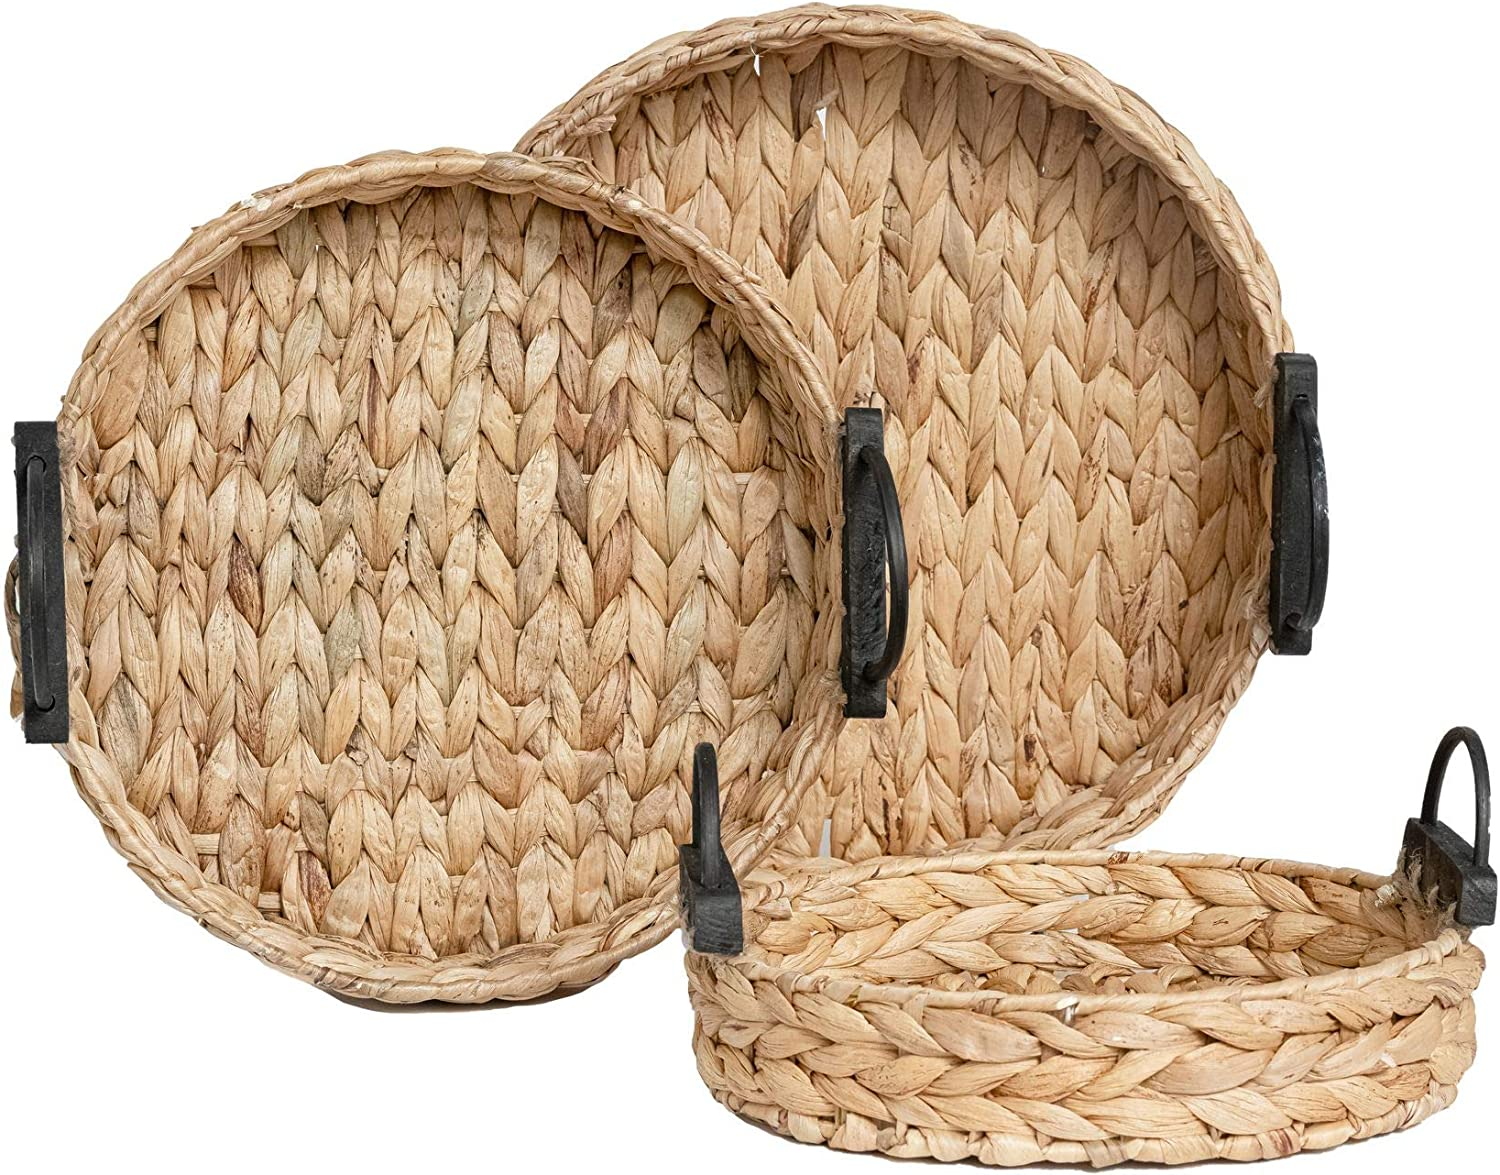 National uniform free shipping Handcrafted Hyacinth Max 59% OFF Storage Baskets and by RGI Serving Trays Ho